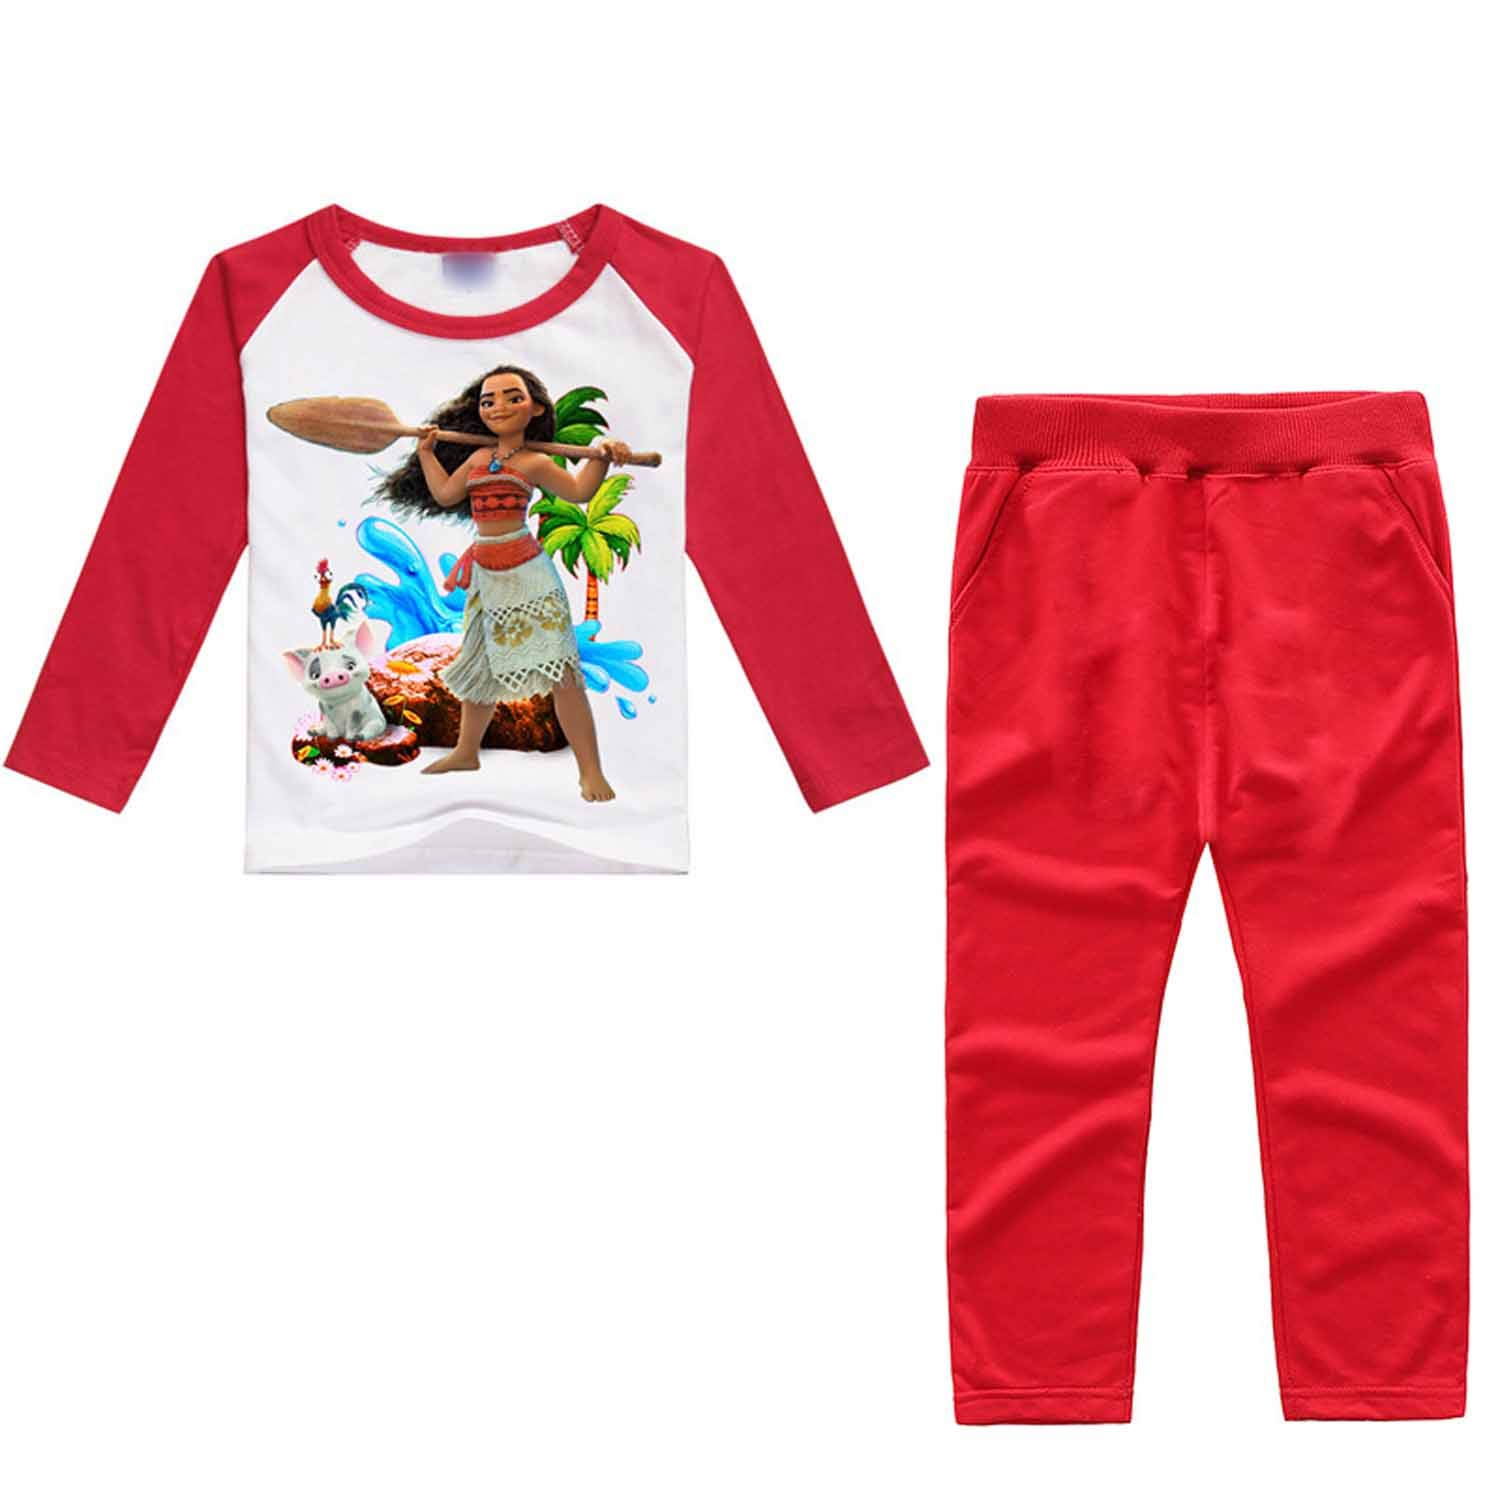 PCLOUD Moana Childrens Printing Long Sleeves T-Shirt Suit